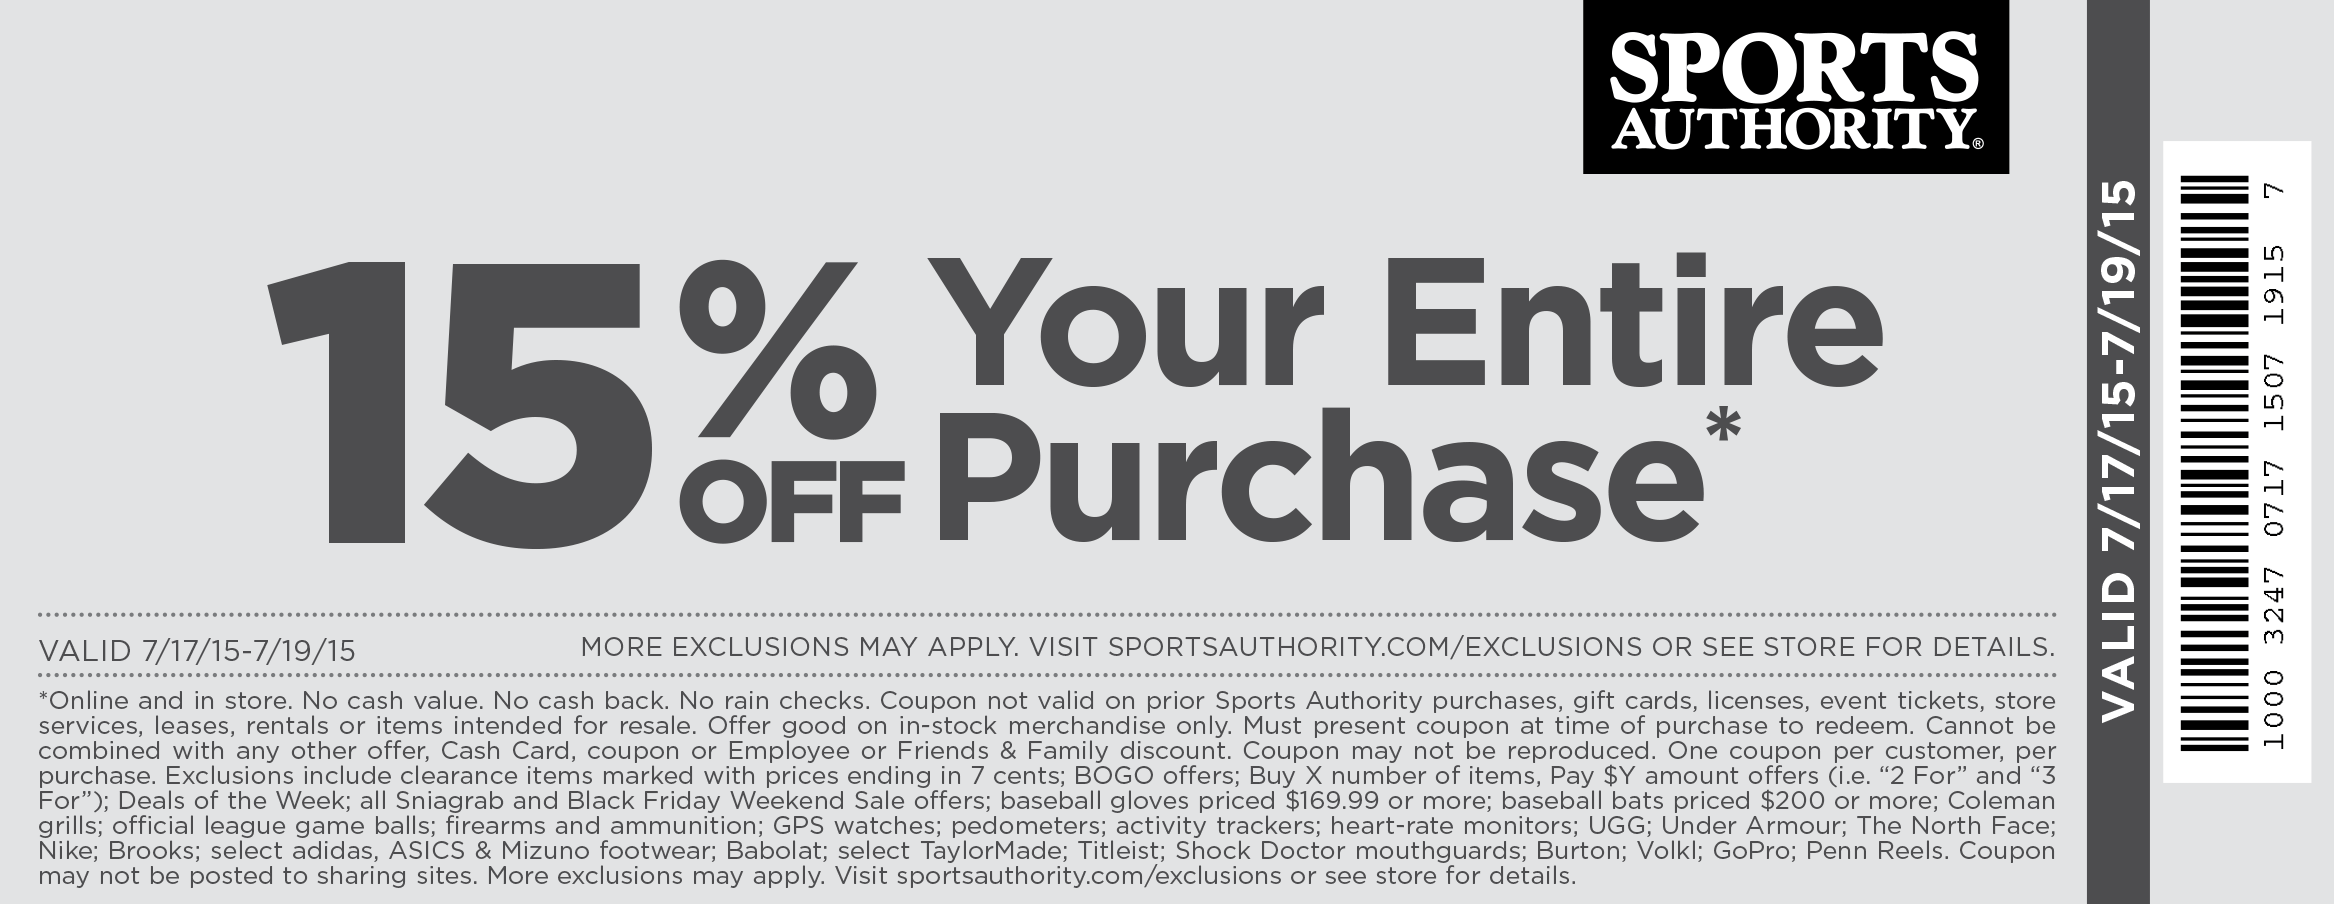 Sports Authority Coupon September 2017 15% off today at Sports Authority, ditto online